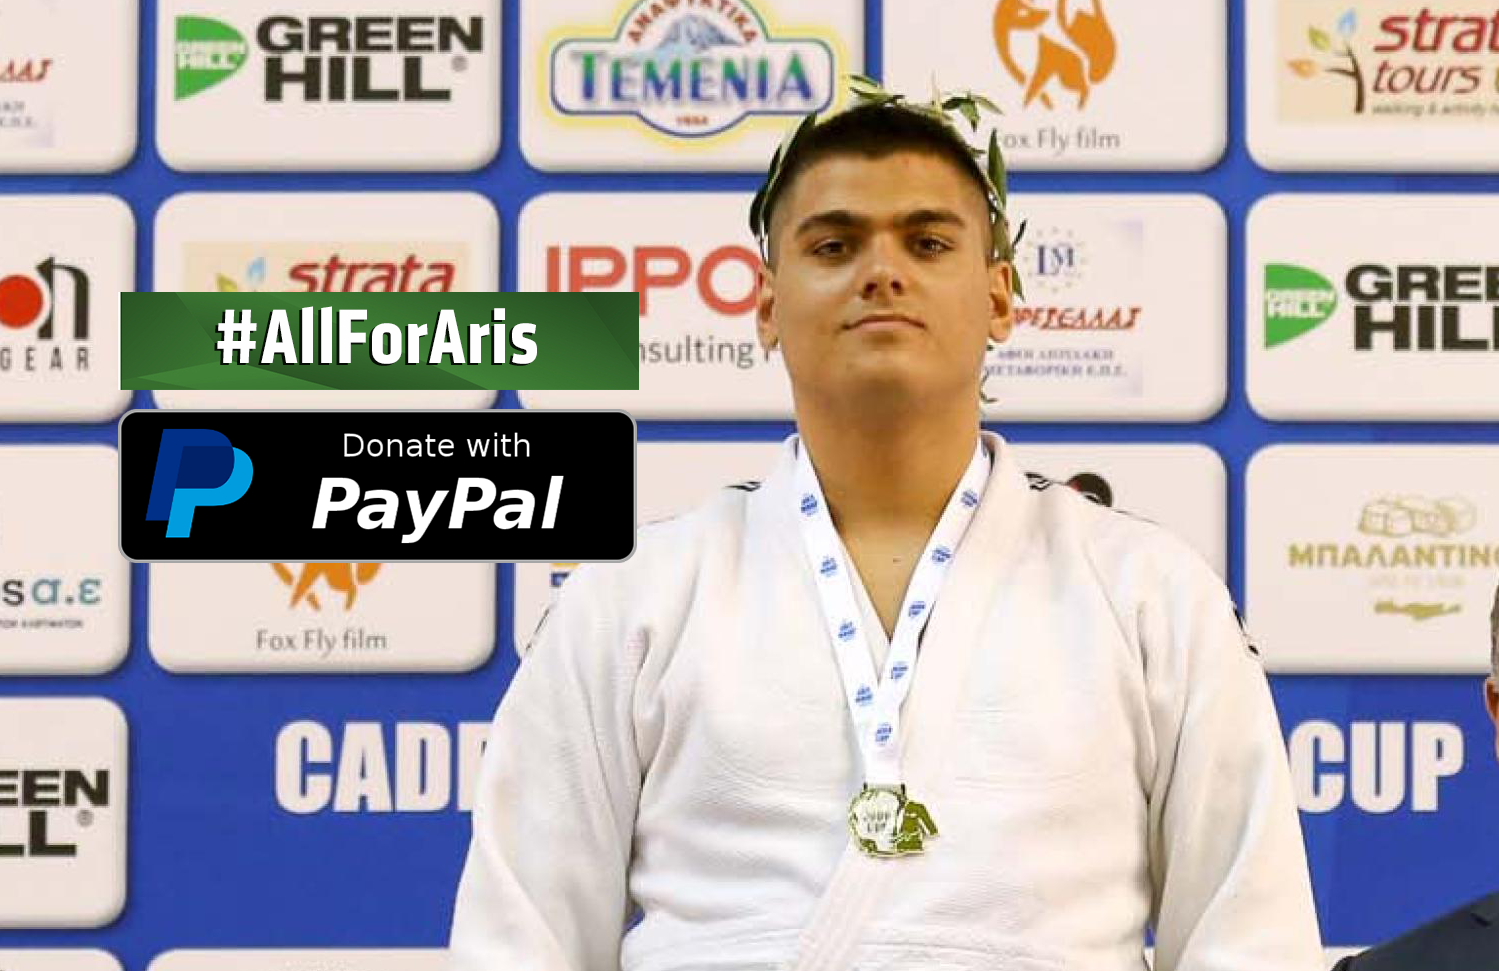 ALL FOR ARIS: JUDOKA FOR JUDOKA IN LIFE CHANGING APPEAL